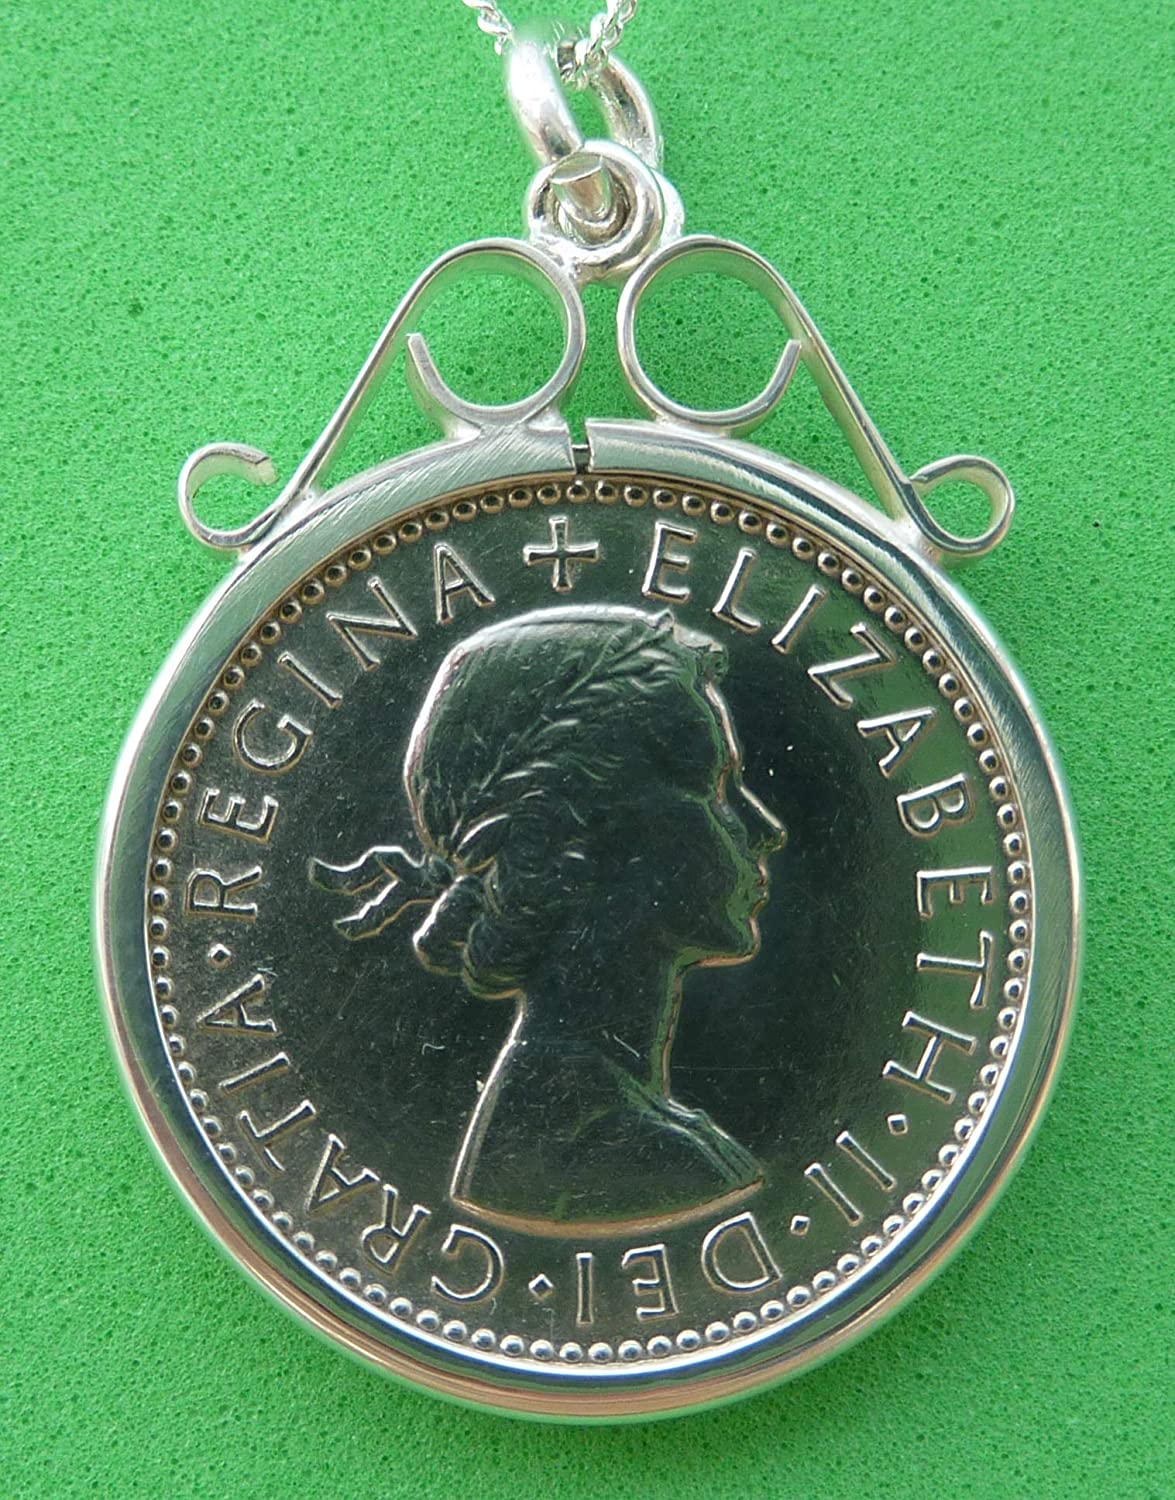 Lucky Sixpence 1964 Genuine English Old Tanner Coin in 925 Silver Scroll Mount with Sterling Silver 18inch Diamond Cut Curb Chain Original 55th Birthday Gift for 55 Year Old Woman Or Man